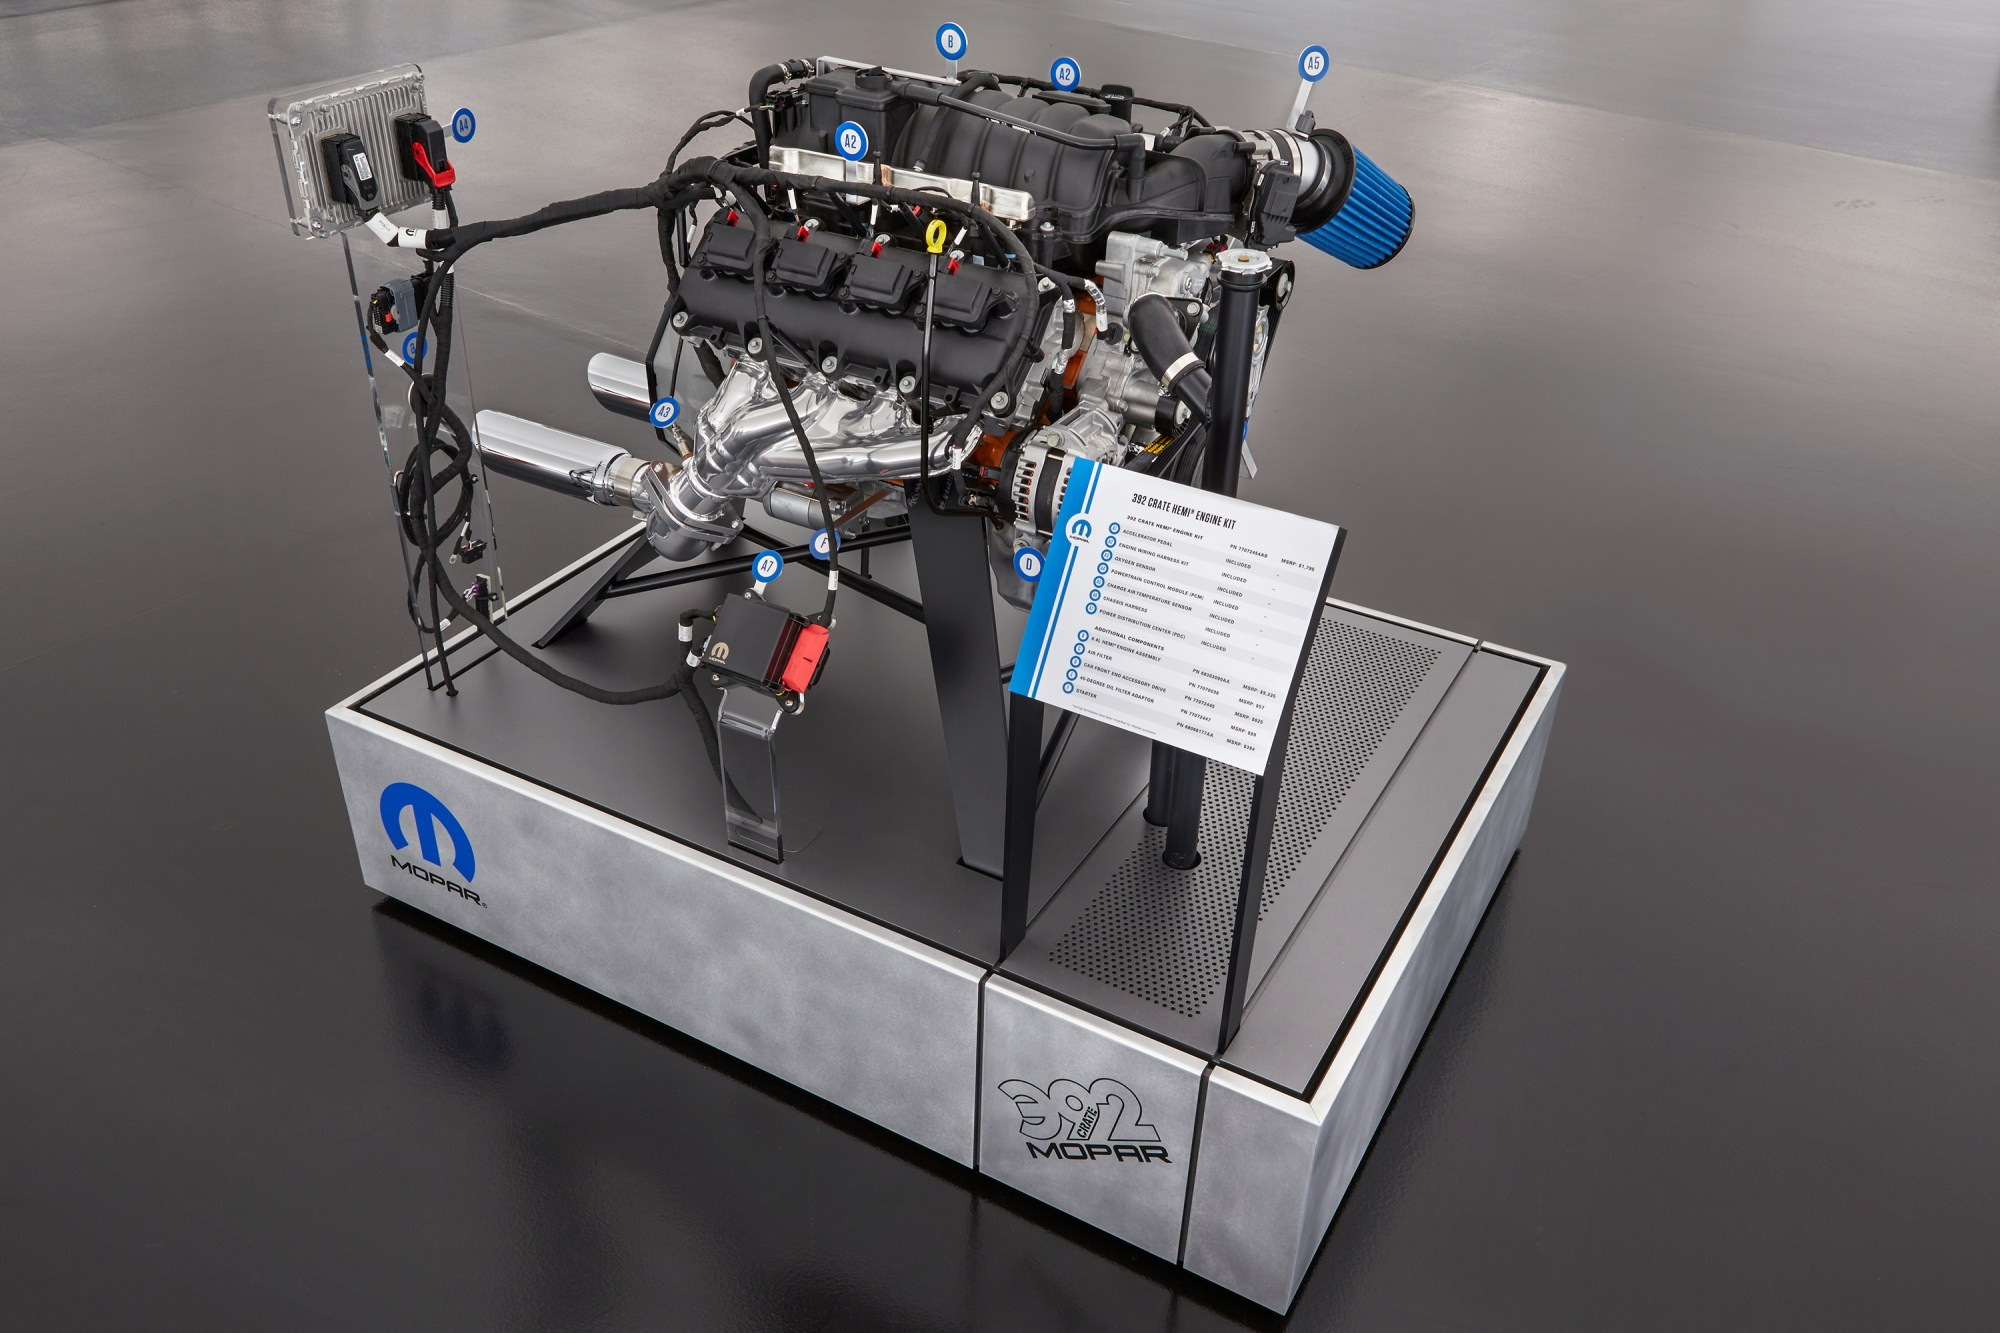 hight resolution of swap a modern hemi into your classic mopar with mopar s new crate hemi engine kits mopar connection magazine a comprehensive daily resource for mopar